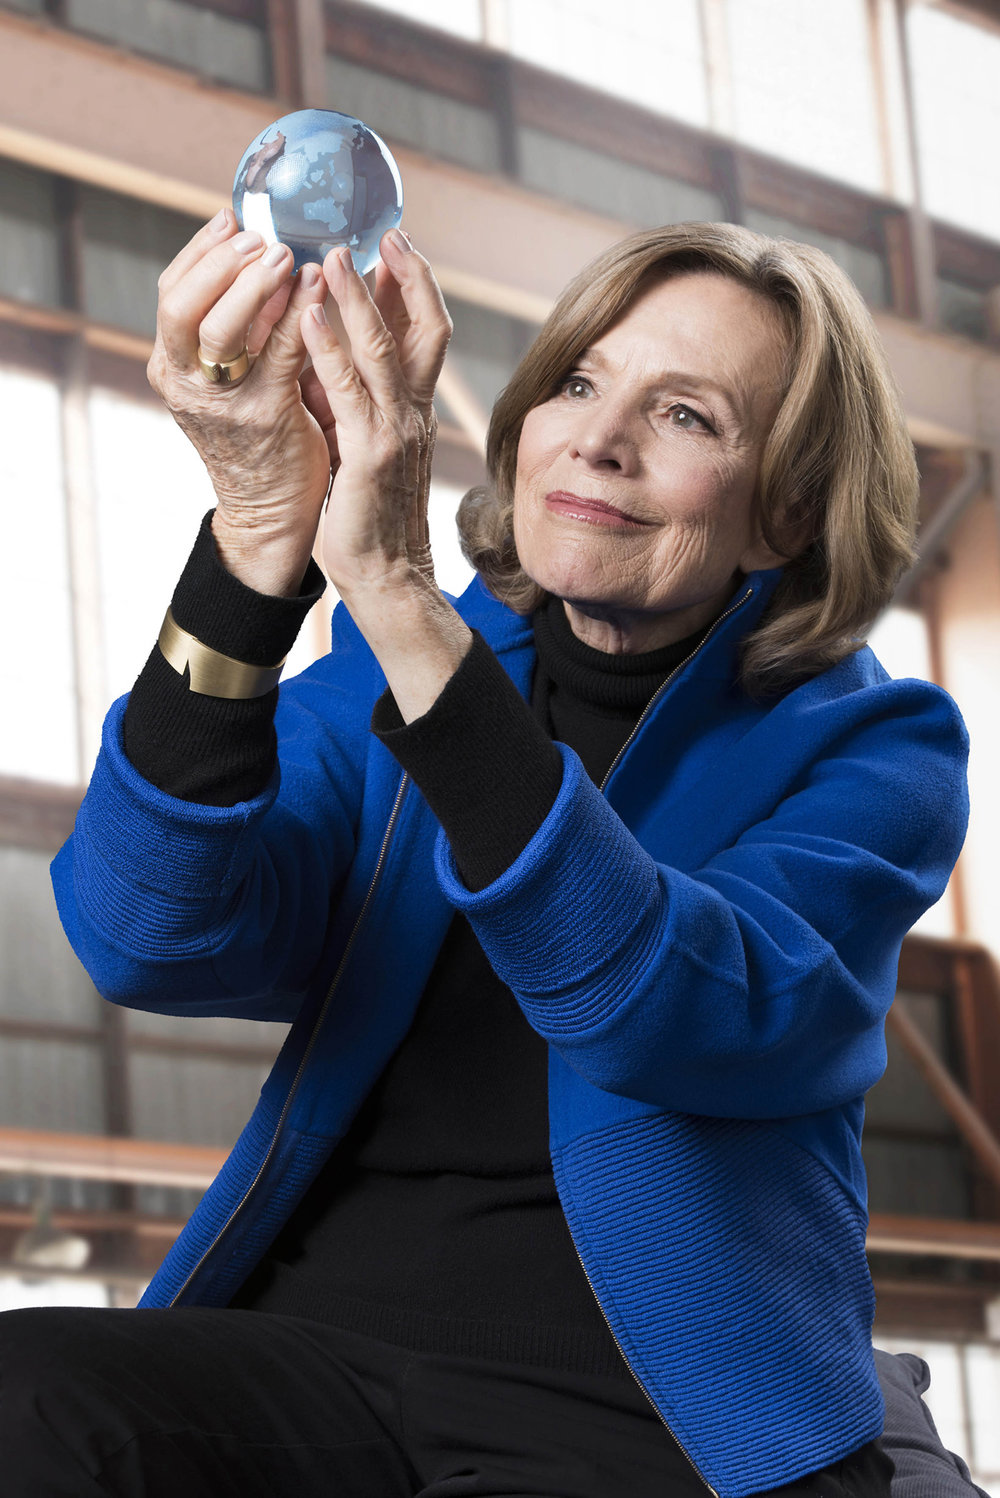 Sylvia Earle - First female chief scientist of the U.S. National Oceanic and Atmospheric Administration